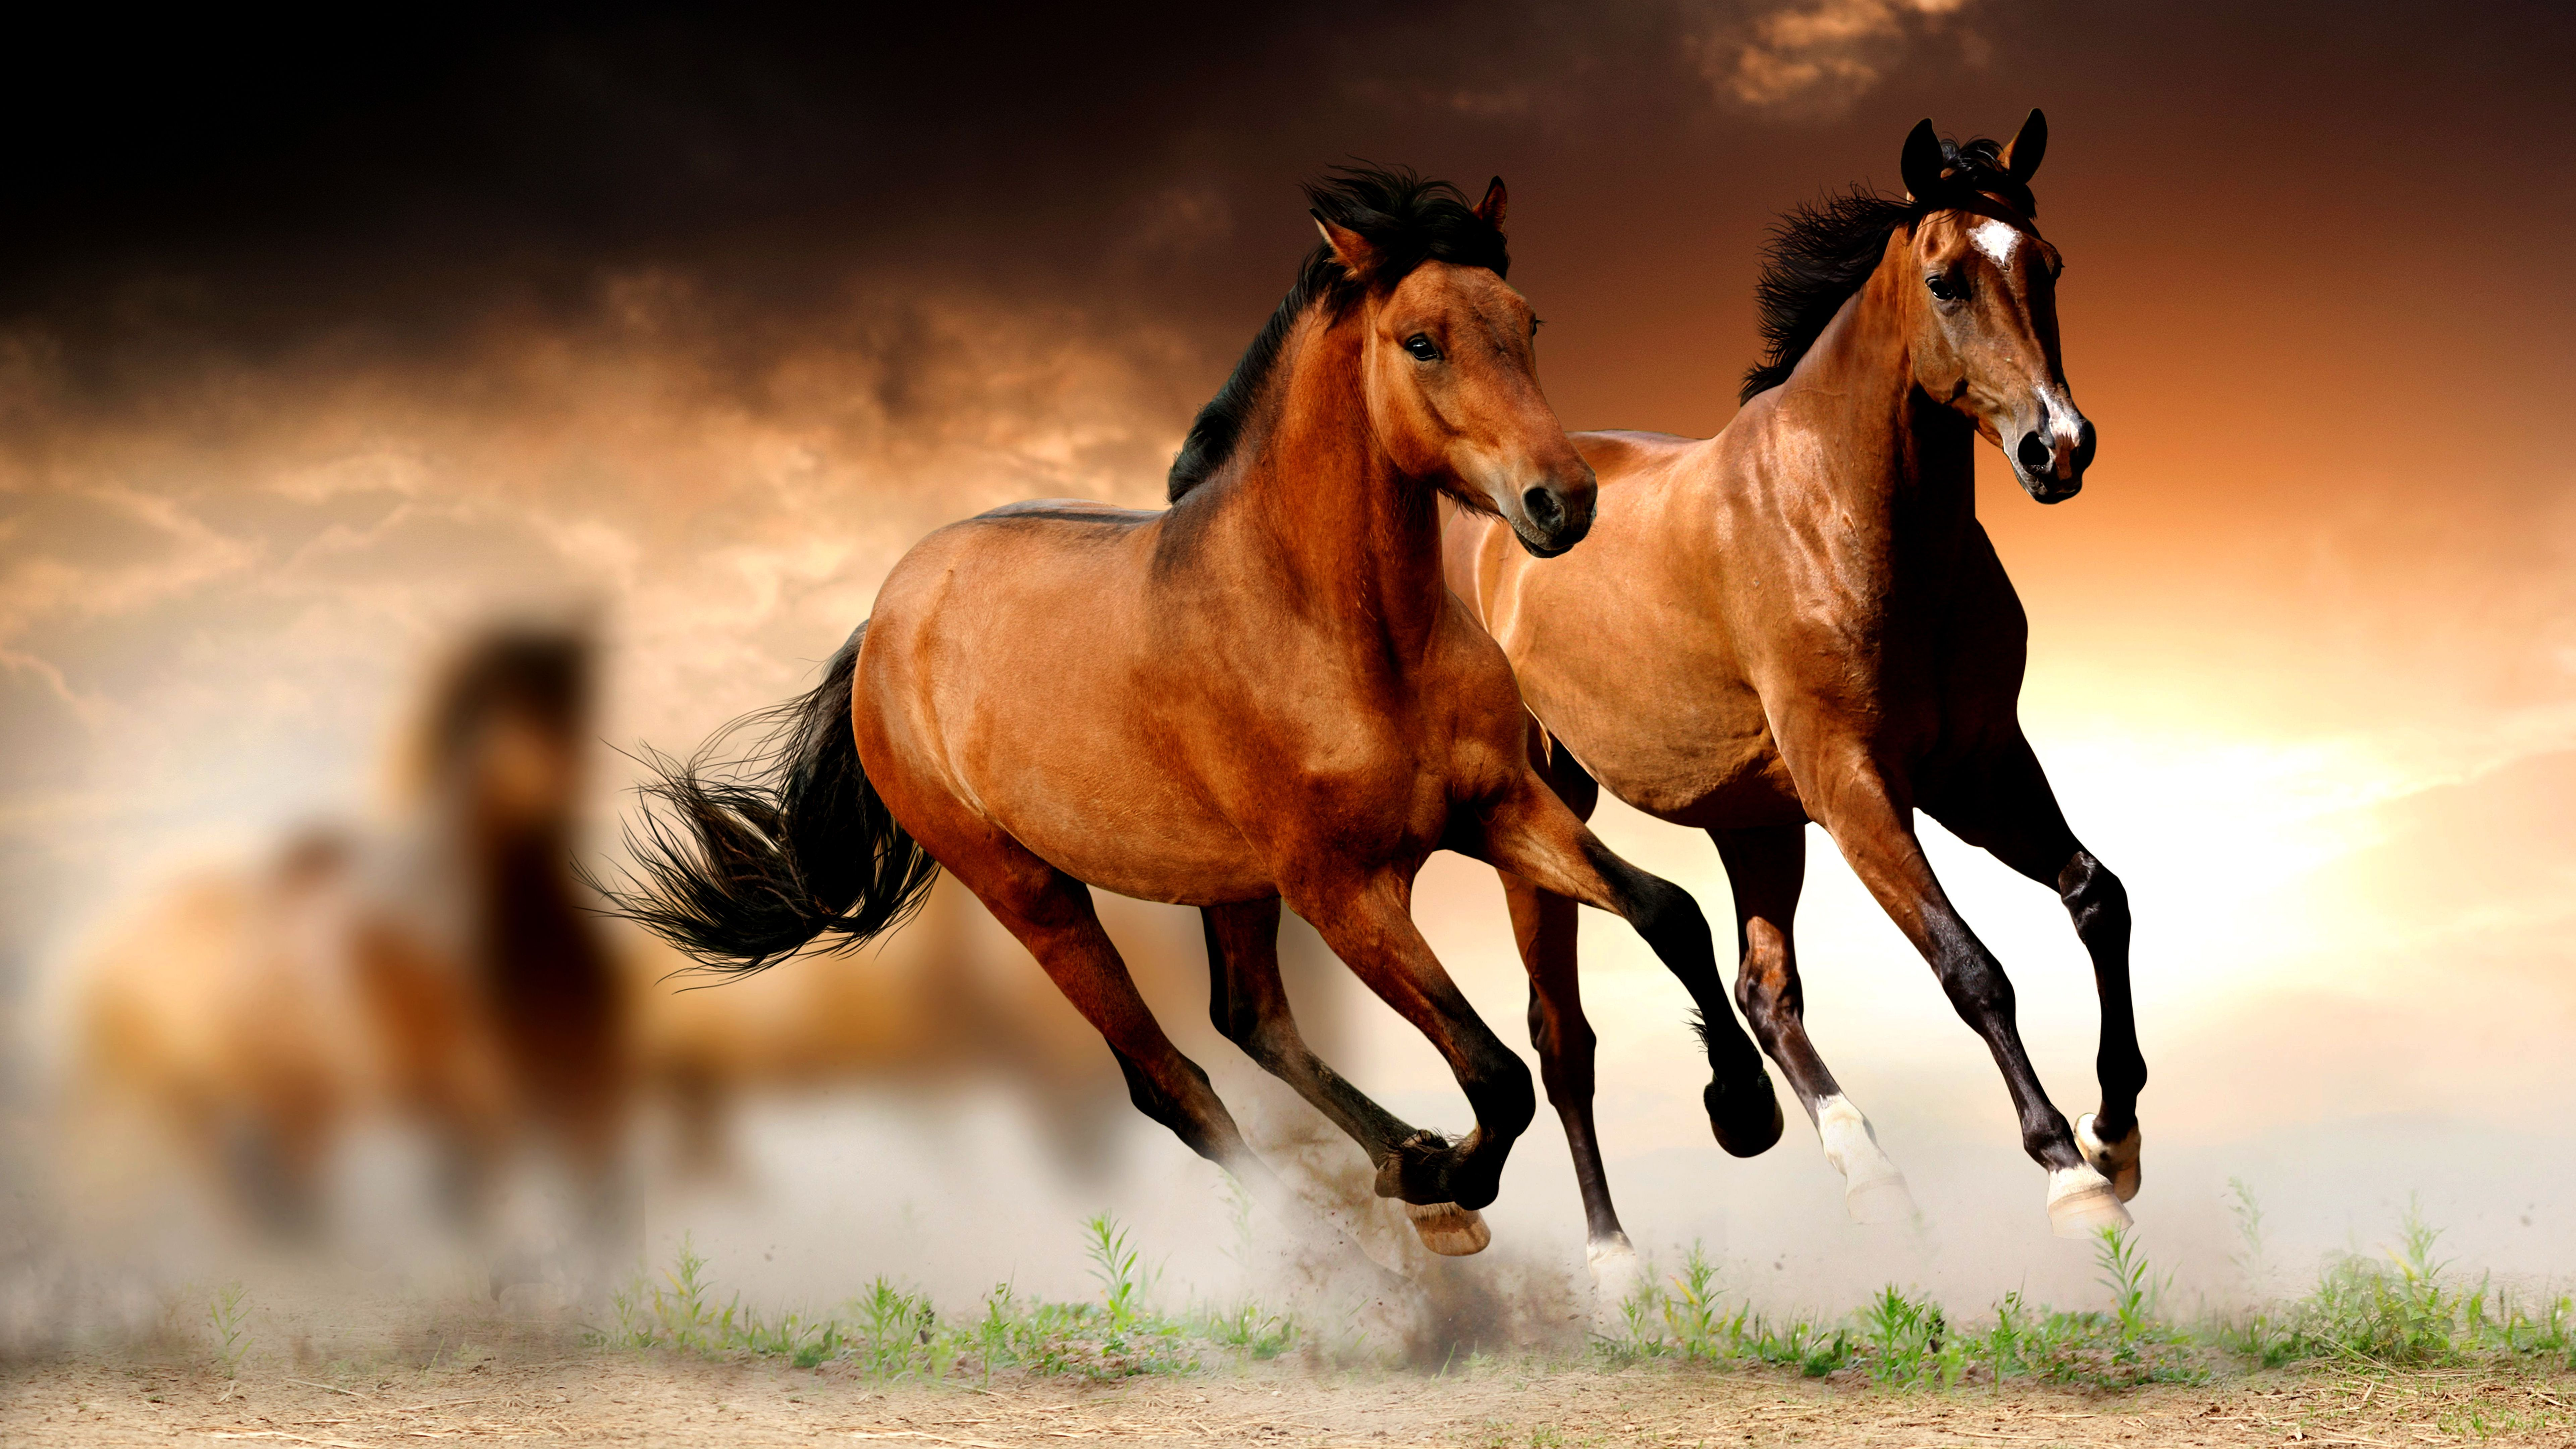 Freenom World Horse Wallpaper Horses Beautiful Horses